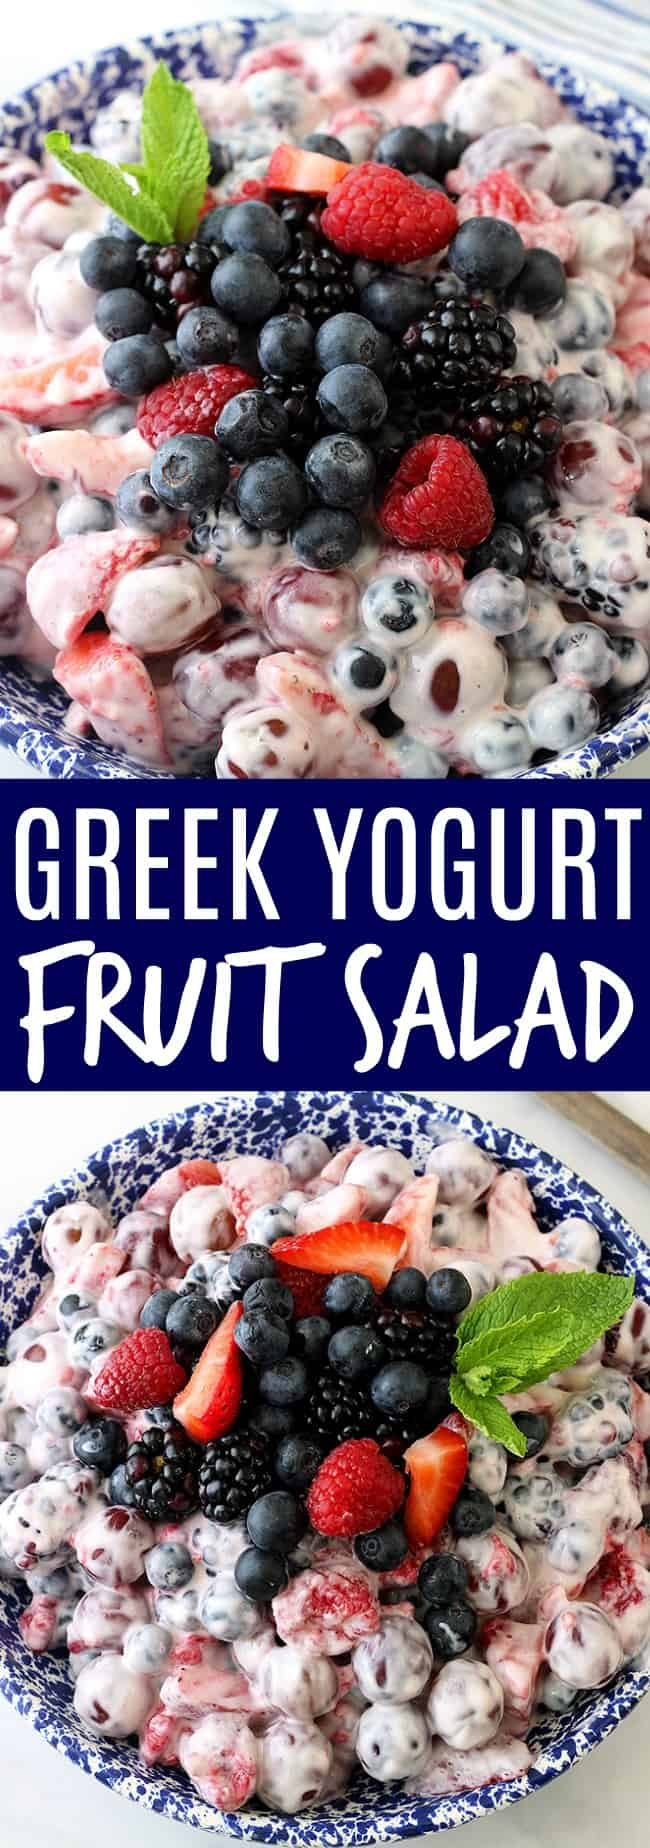 This Greek Yogurt Fruit Salad is made with fresh fruit and a creamy greek yogurt cheesecake filling! Perfect for a side dish, or a lightened up dessert!